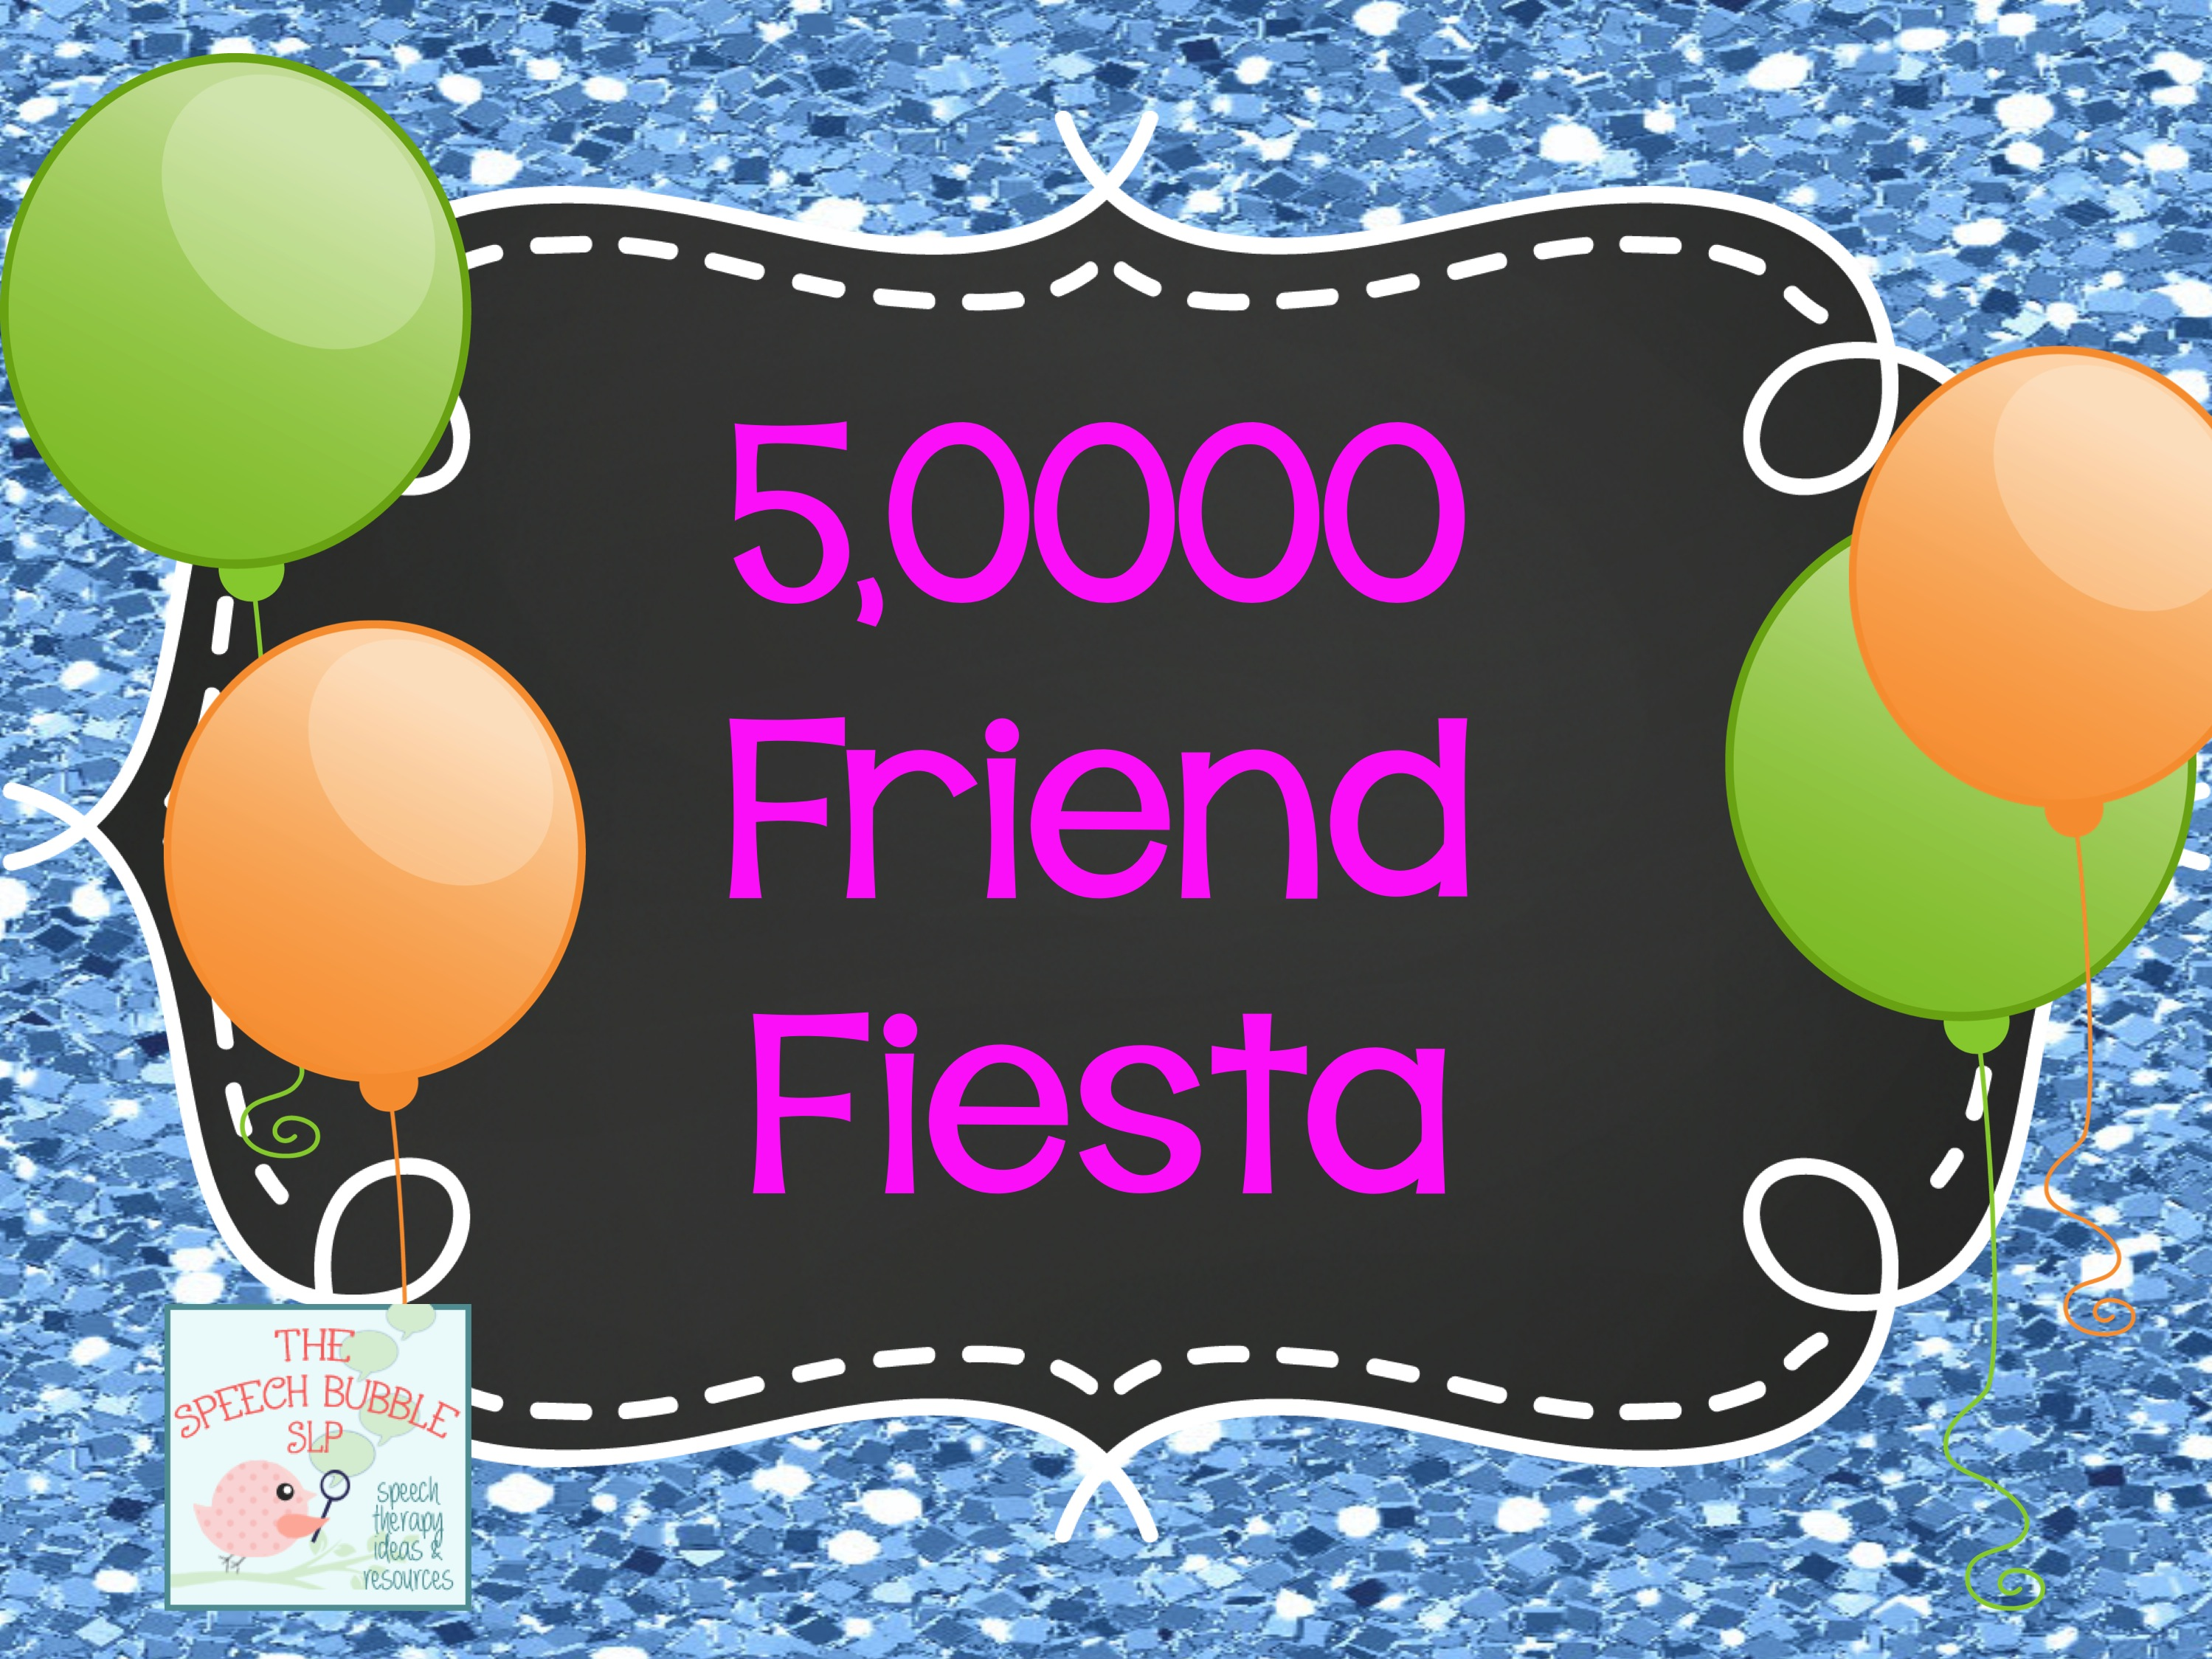 5,000 Friends Fiesta!